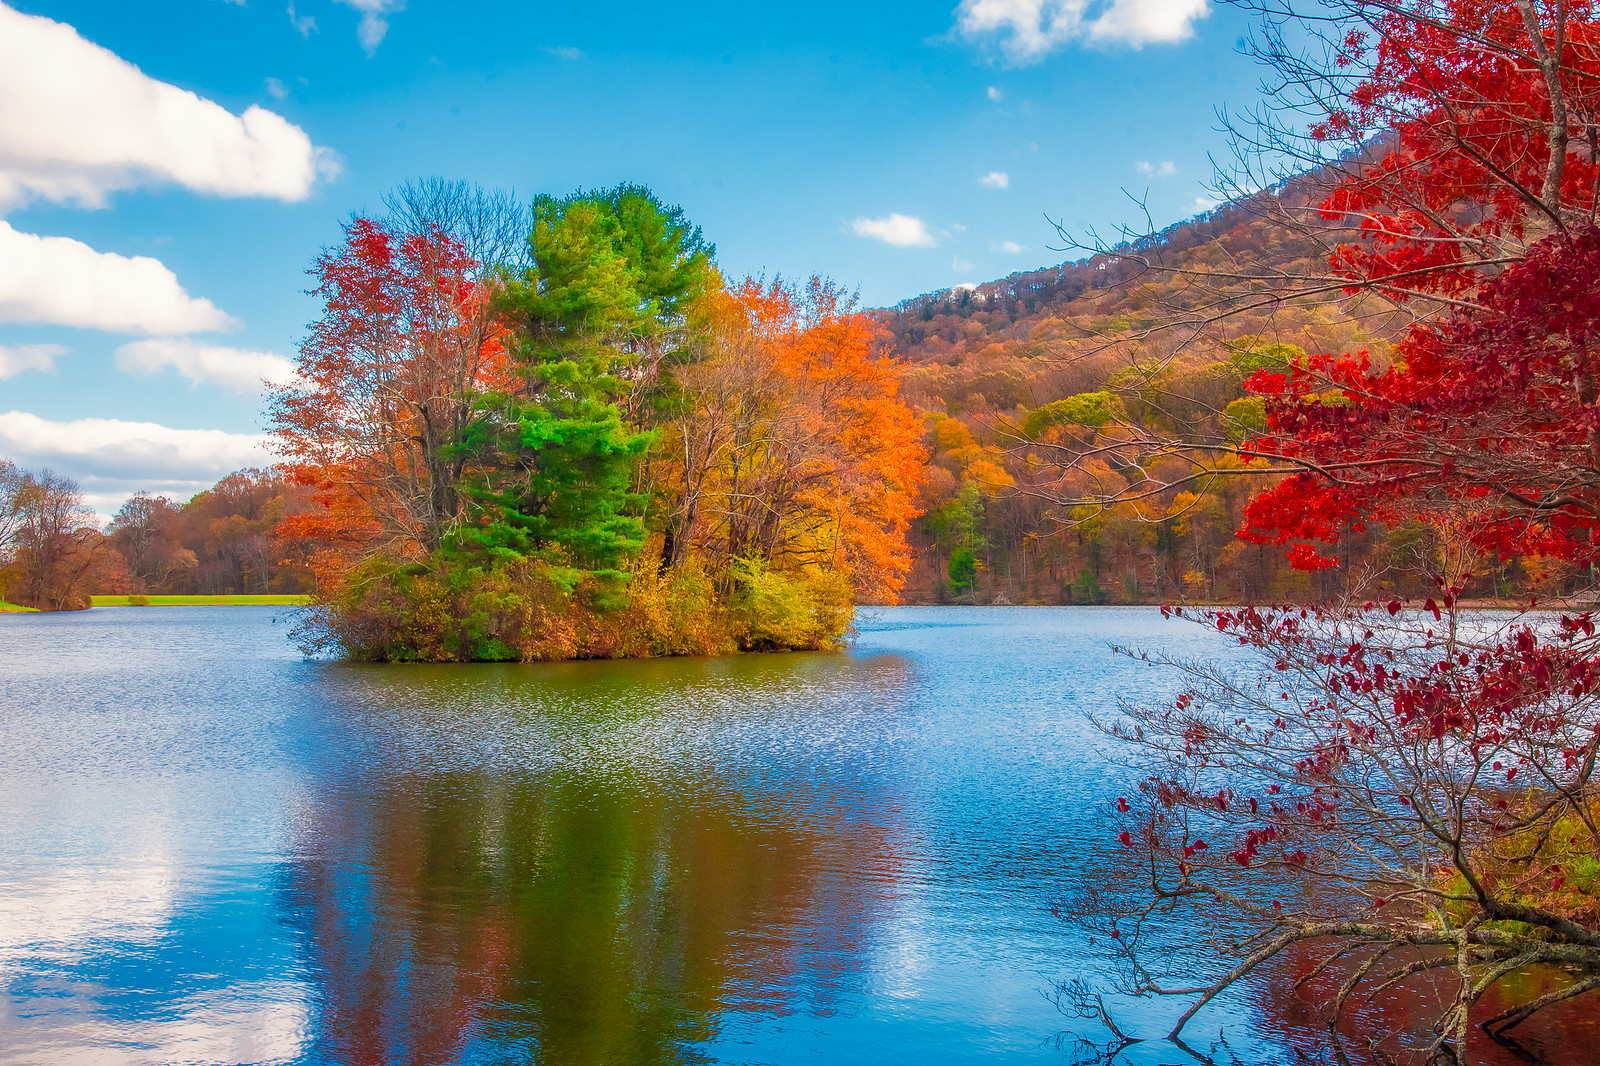 Fall at Peaks of Otter